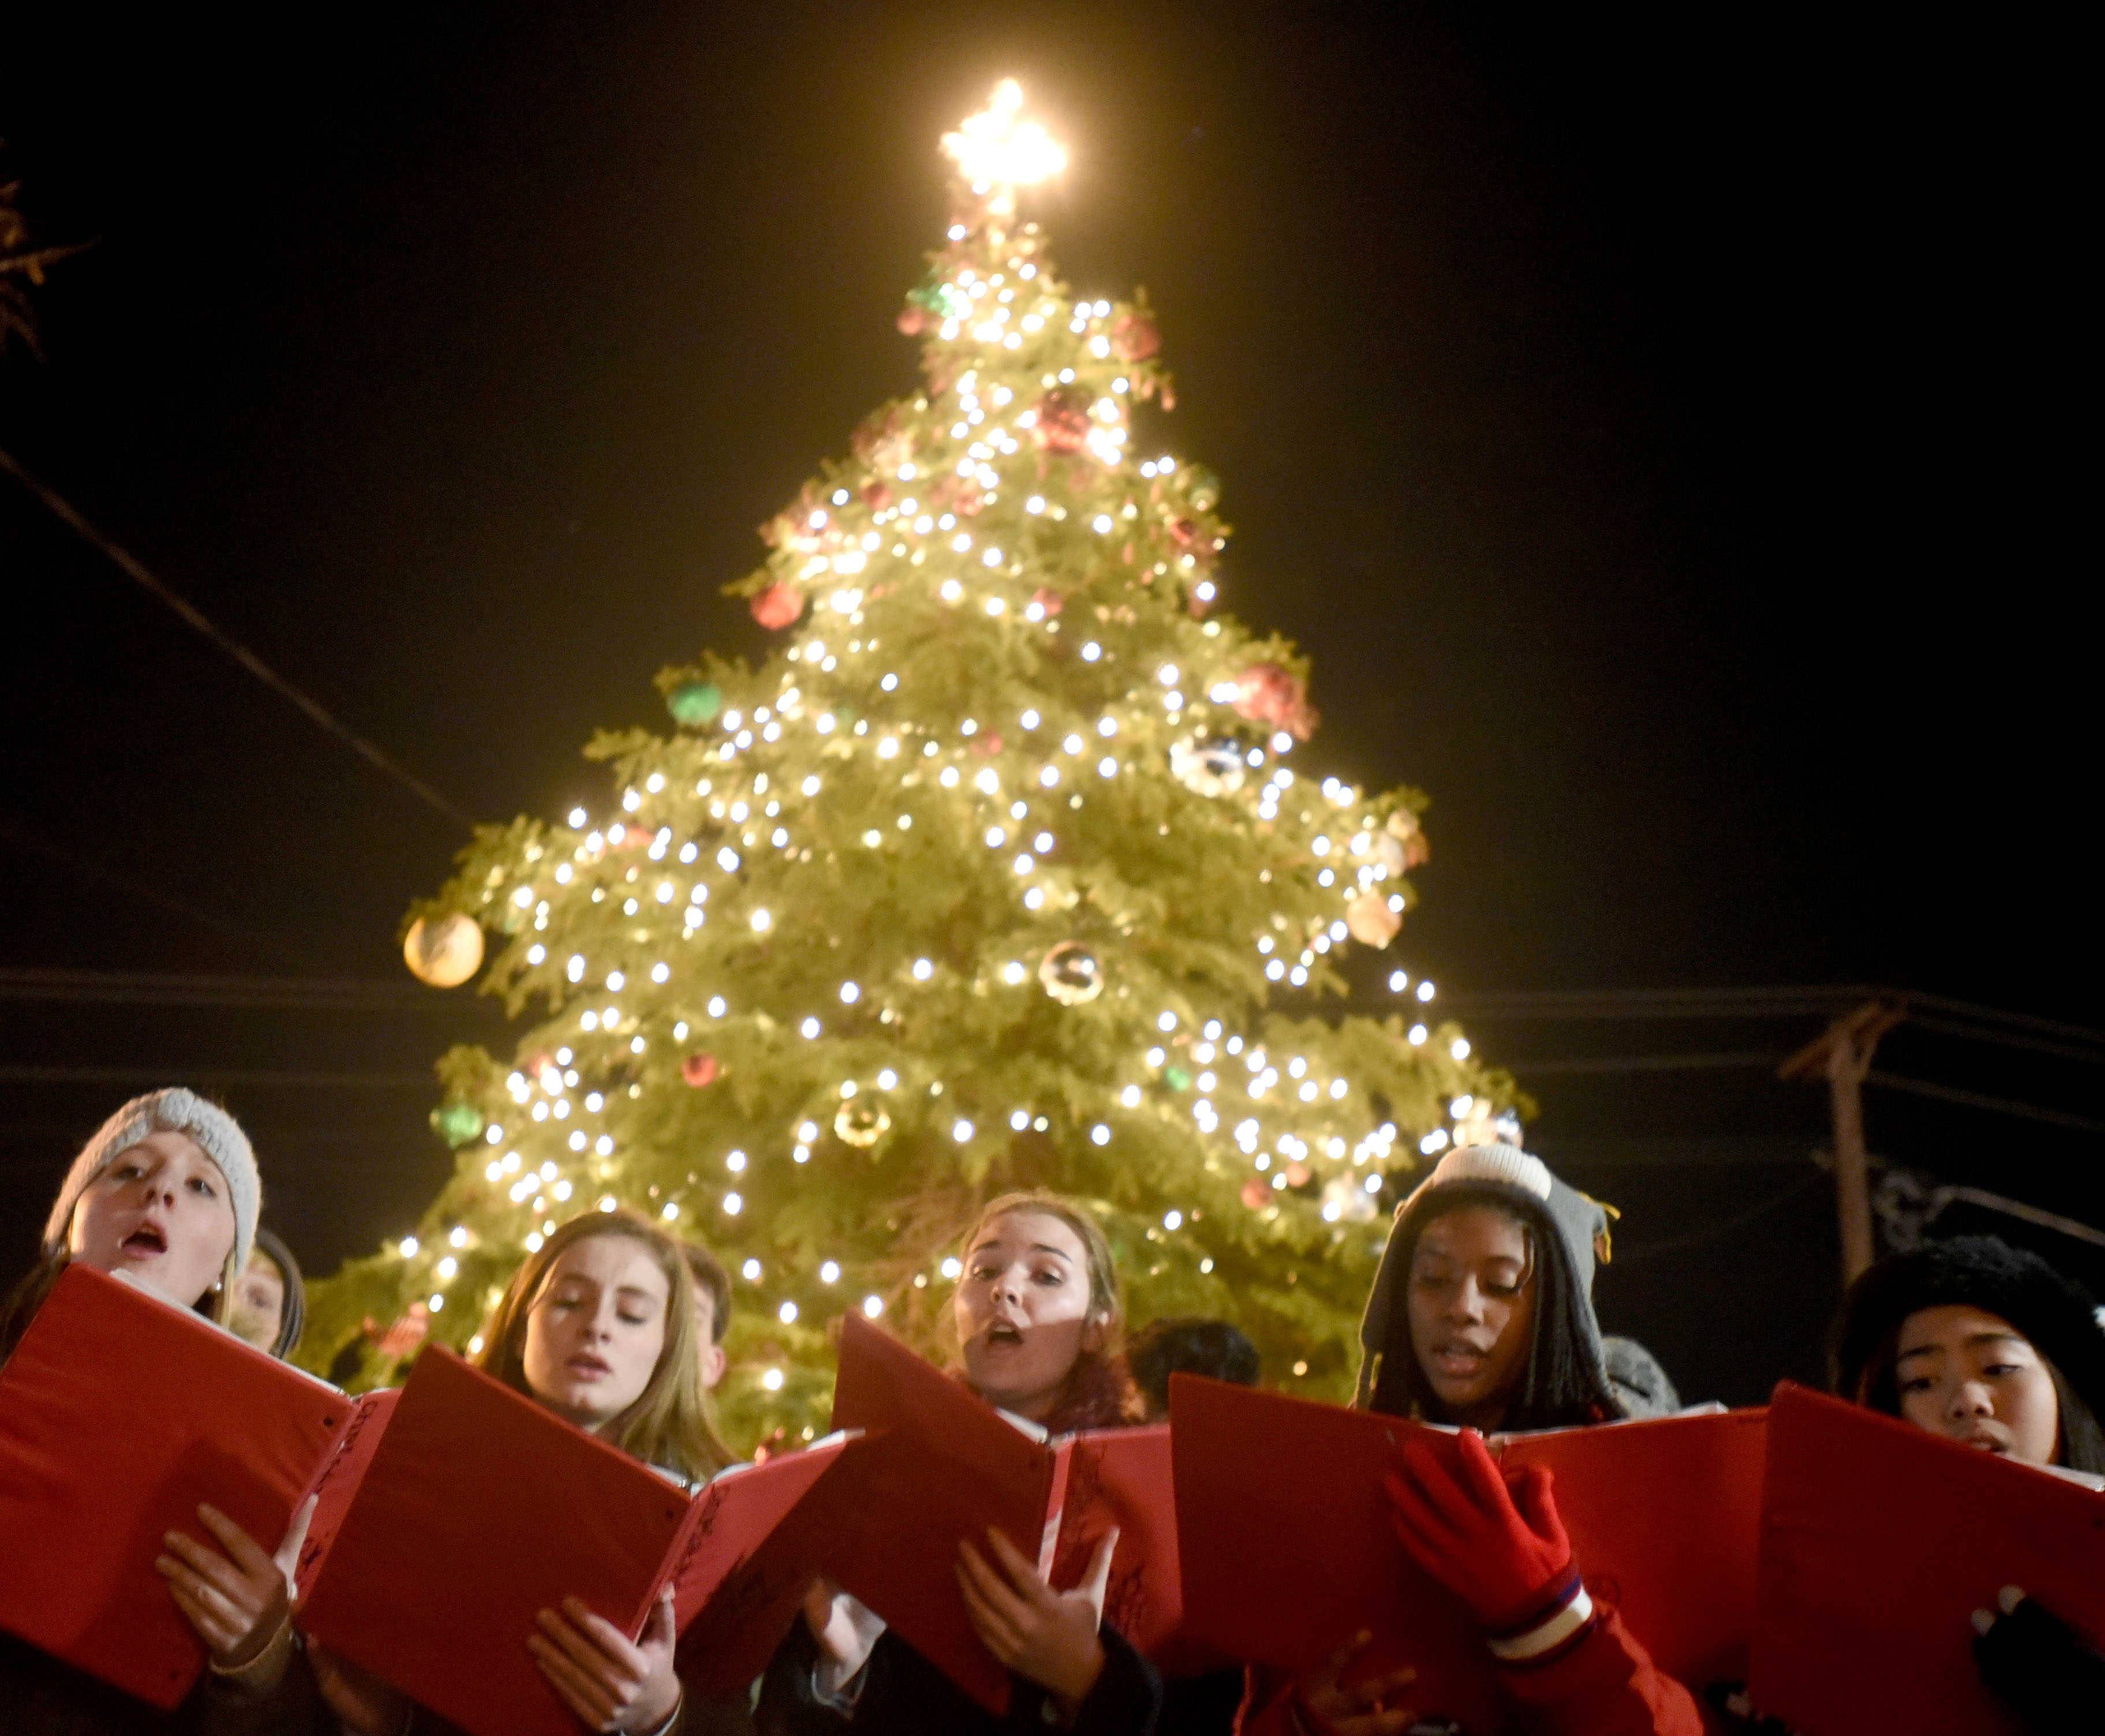 Members of the Dundee-Crown High School chamber choir perform at the East Dundee Christmas tree-lighting during the Dickens in Dundee festival.